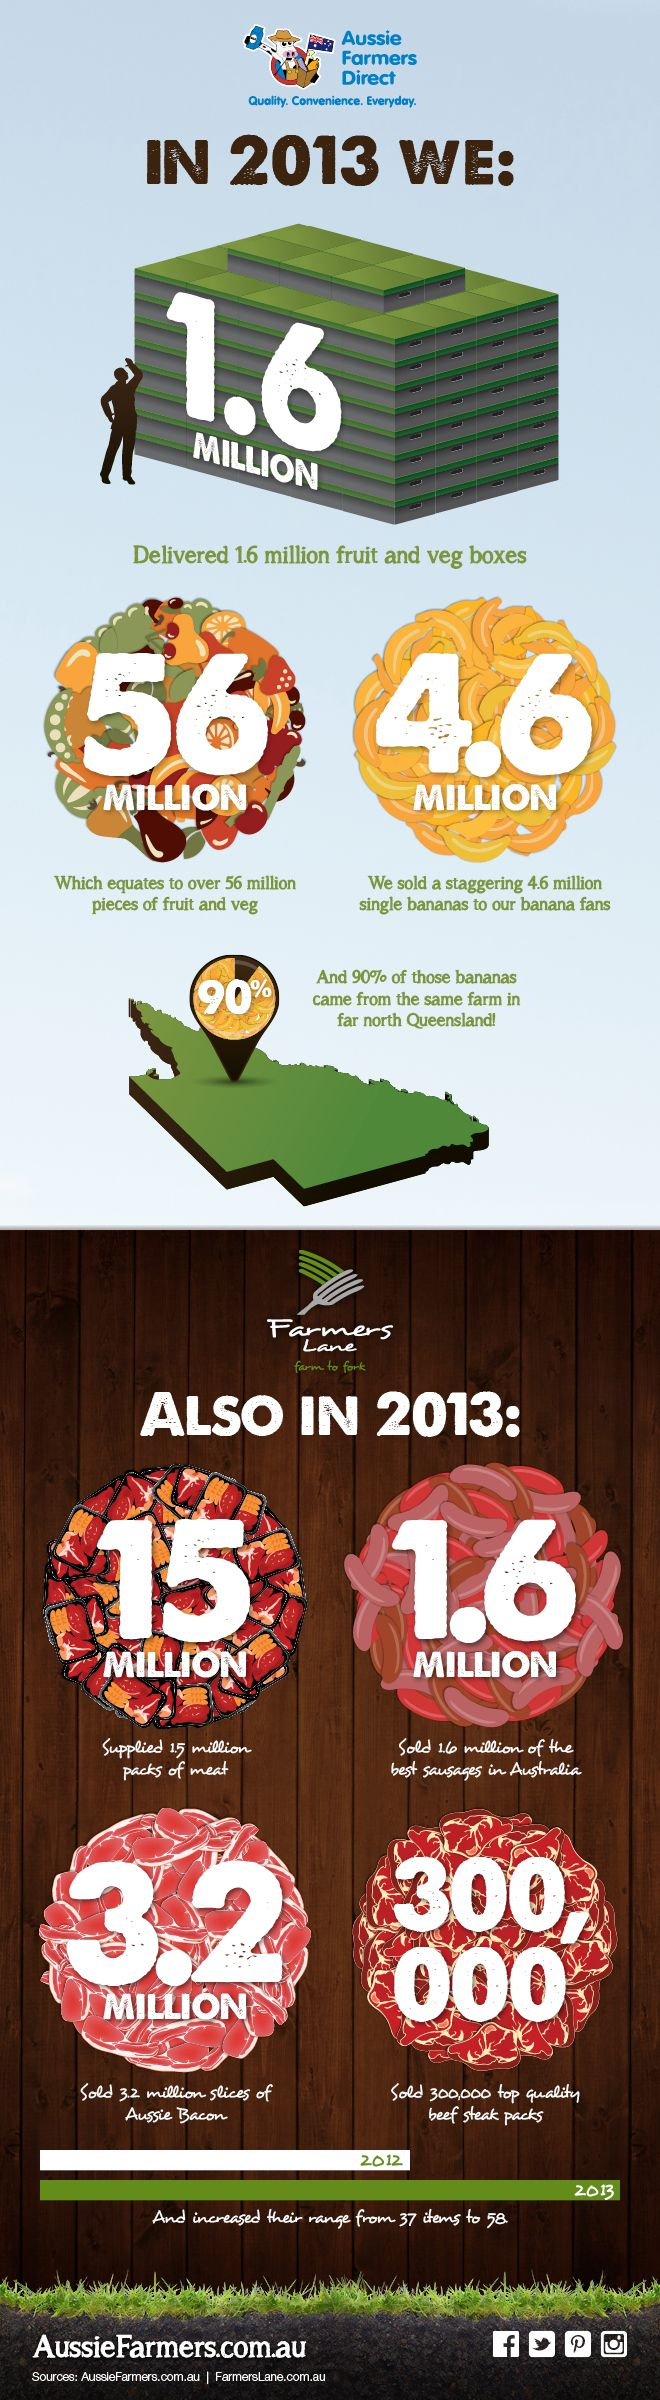 We take a look back at Fresh Fruit, Veg & Meat in numbers for Aussie Farmers Direct and Farmers Lane. #AussieFarmers #Fruit #Veg #Meat #Seafood #FoodShopping #OnlineGroceries